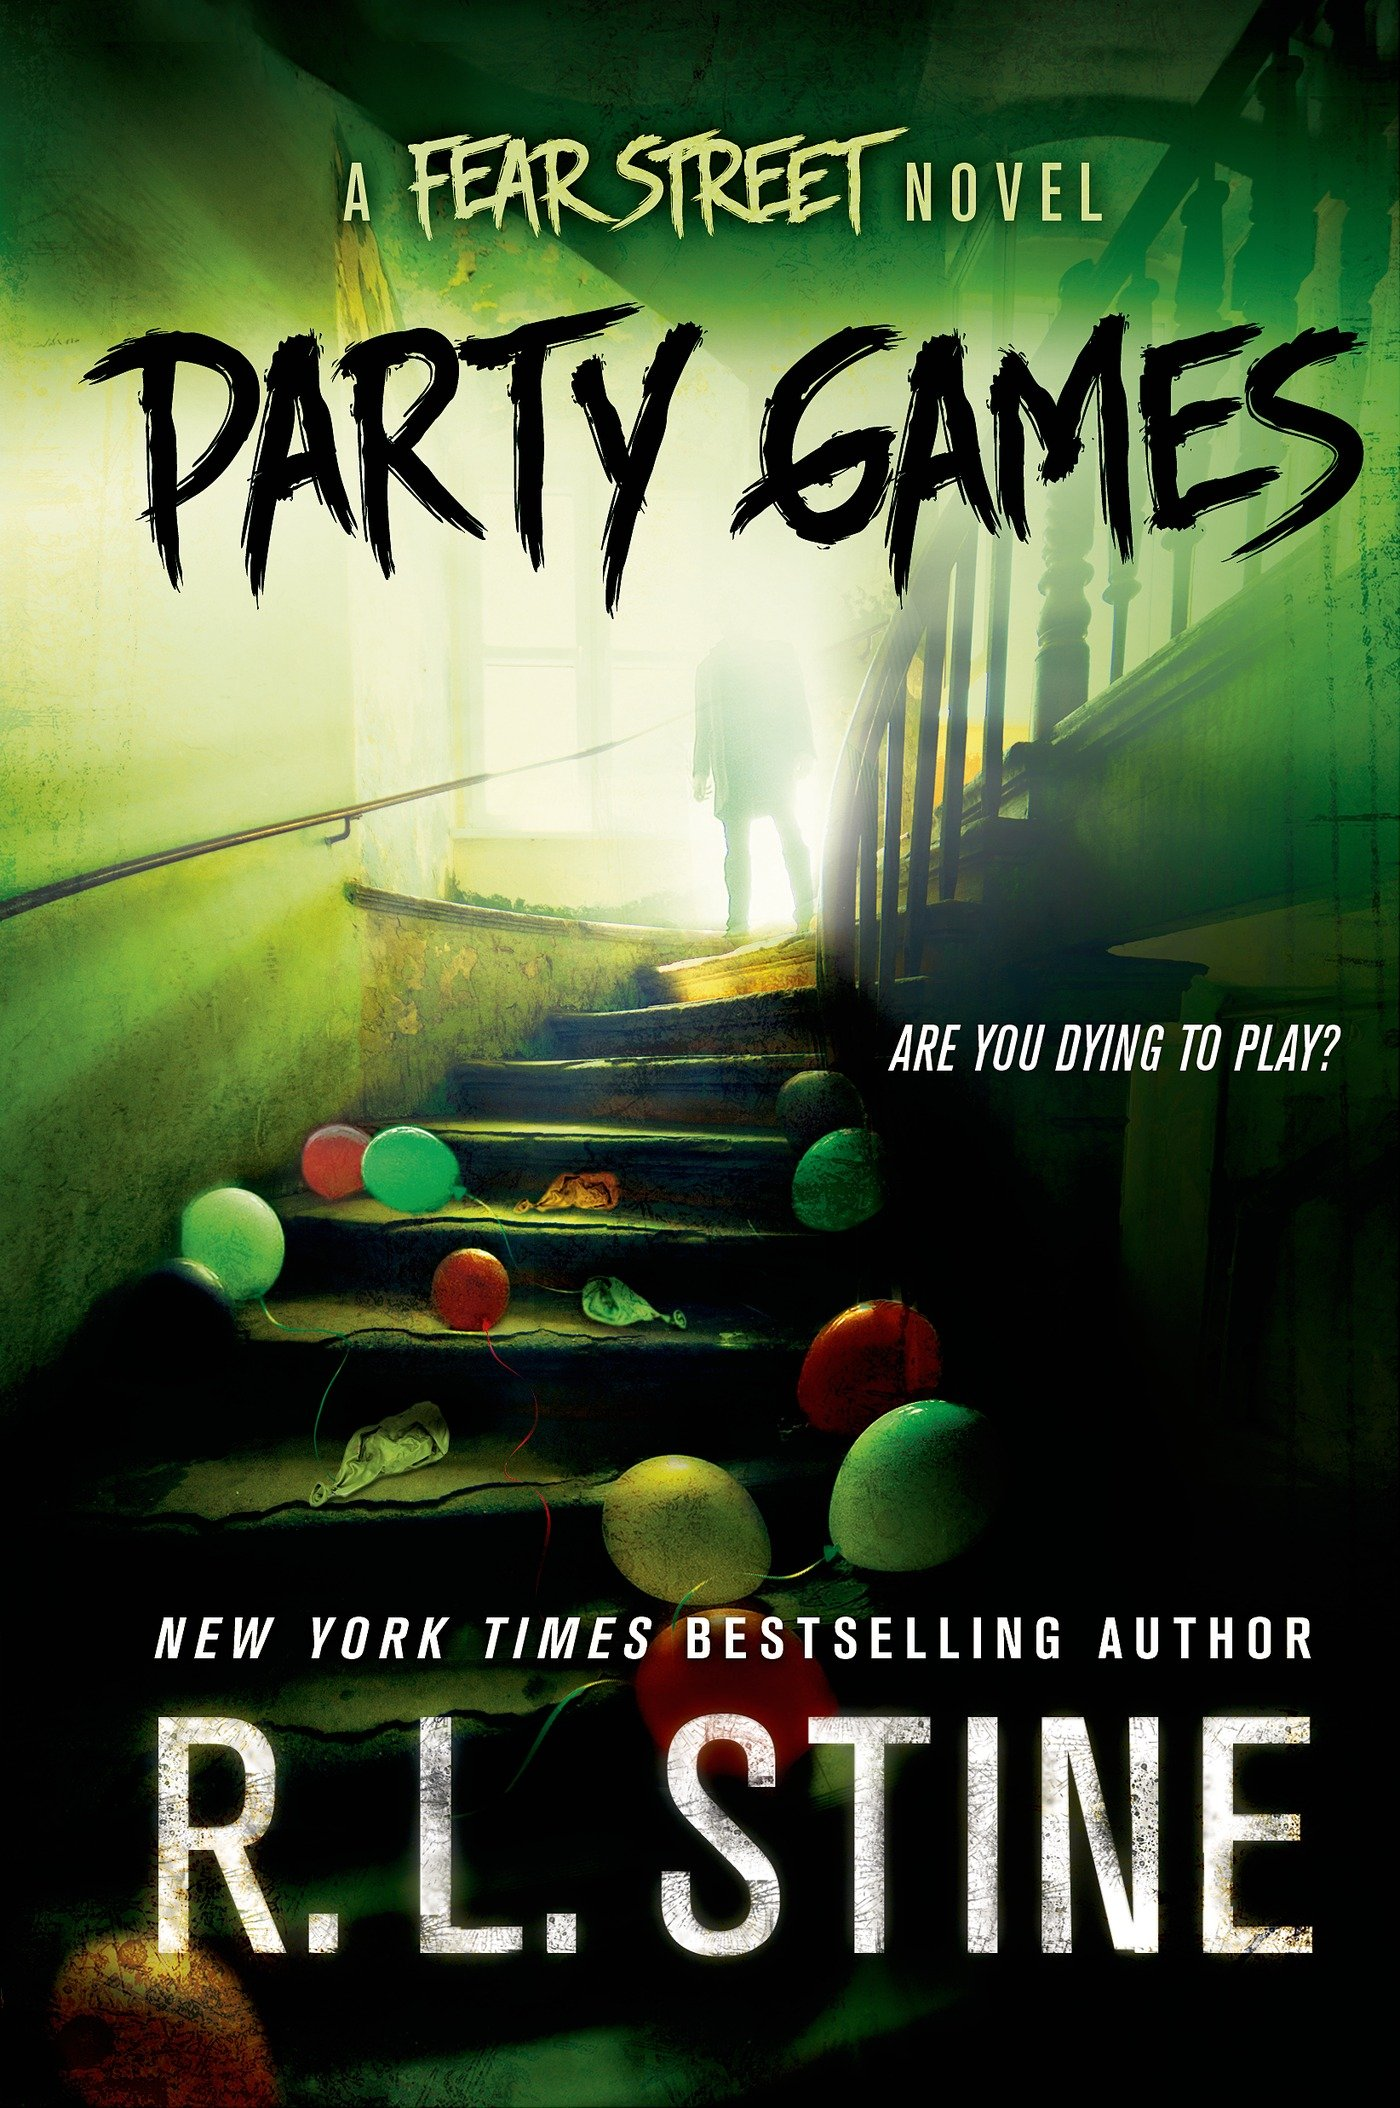 Party Games (Fear Street): Amazon.co.uk: R. L. Stine ...